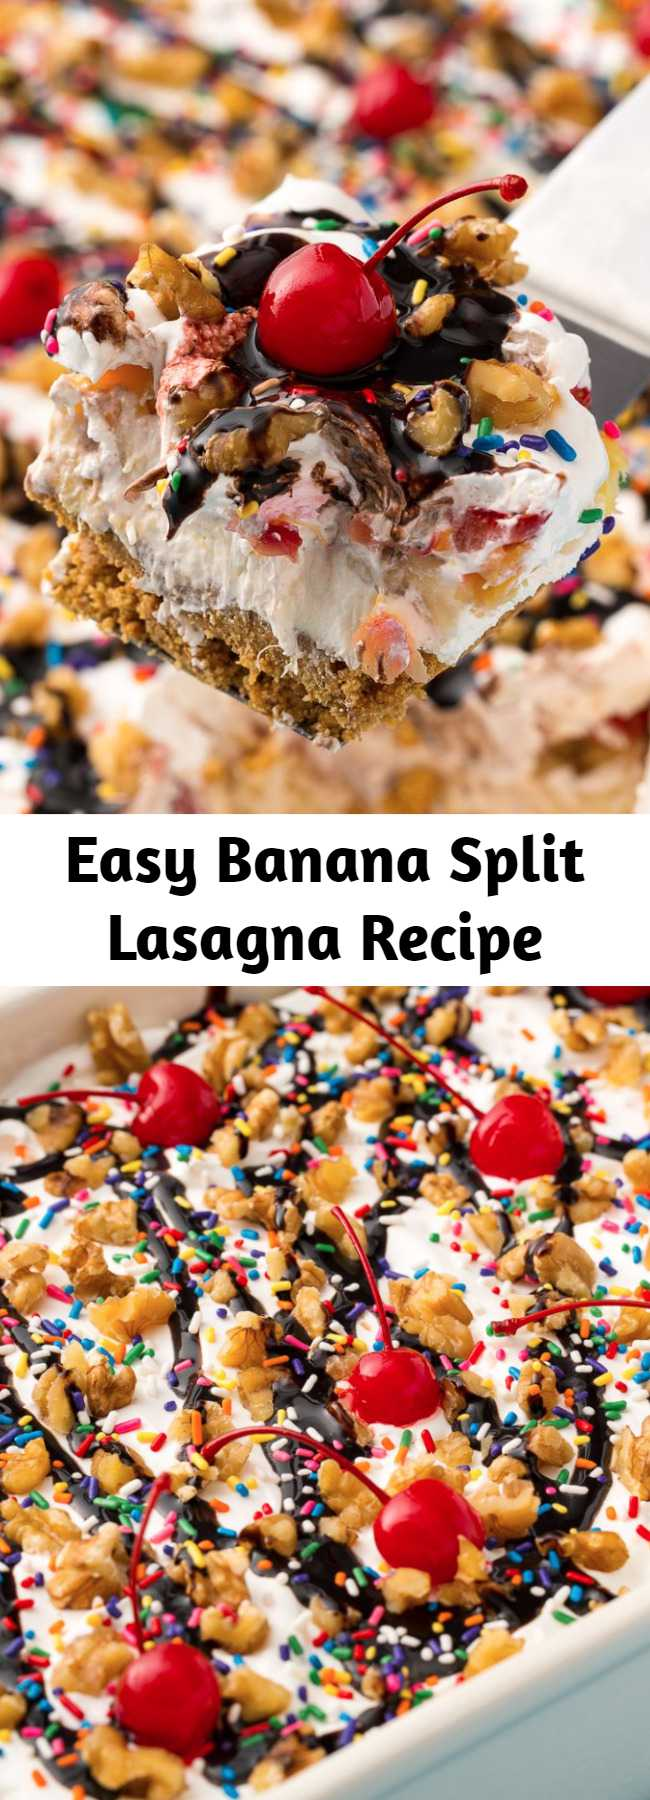 Easy Banana Split Lasagna Recipe - Looking for a fun summer dessert? This Banana Split Lasagna is the best! This no-bake dessert is hands down the most fun way to eat a banana split.